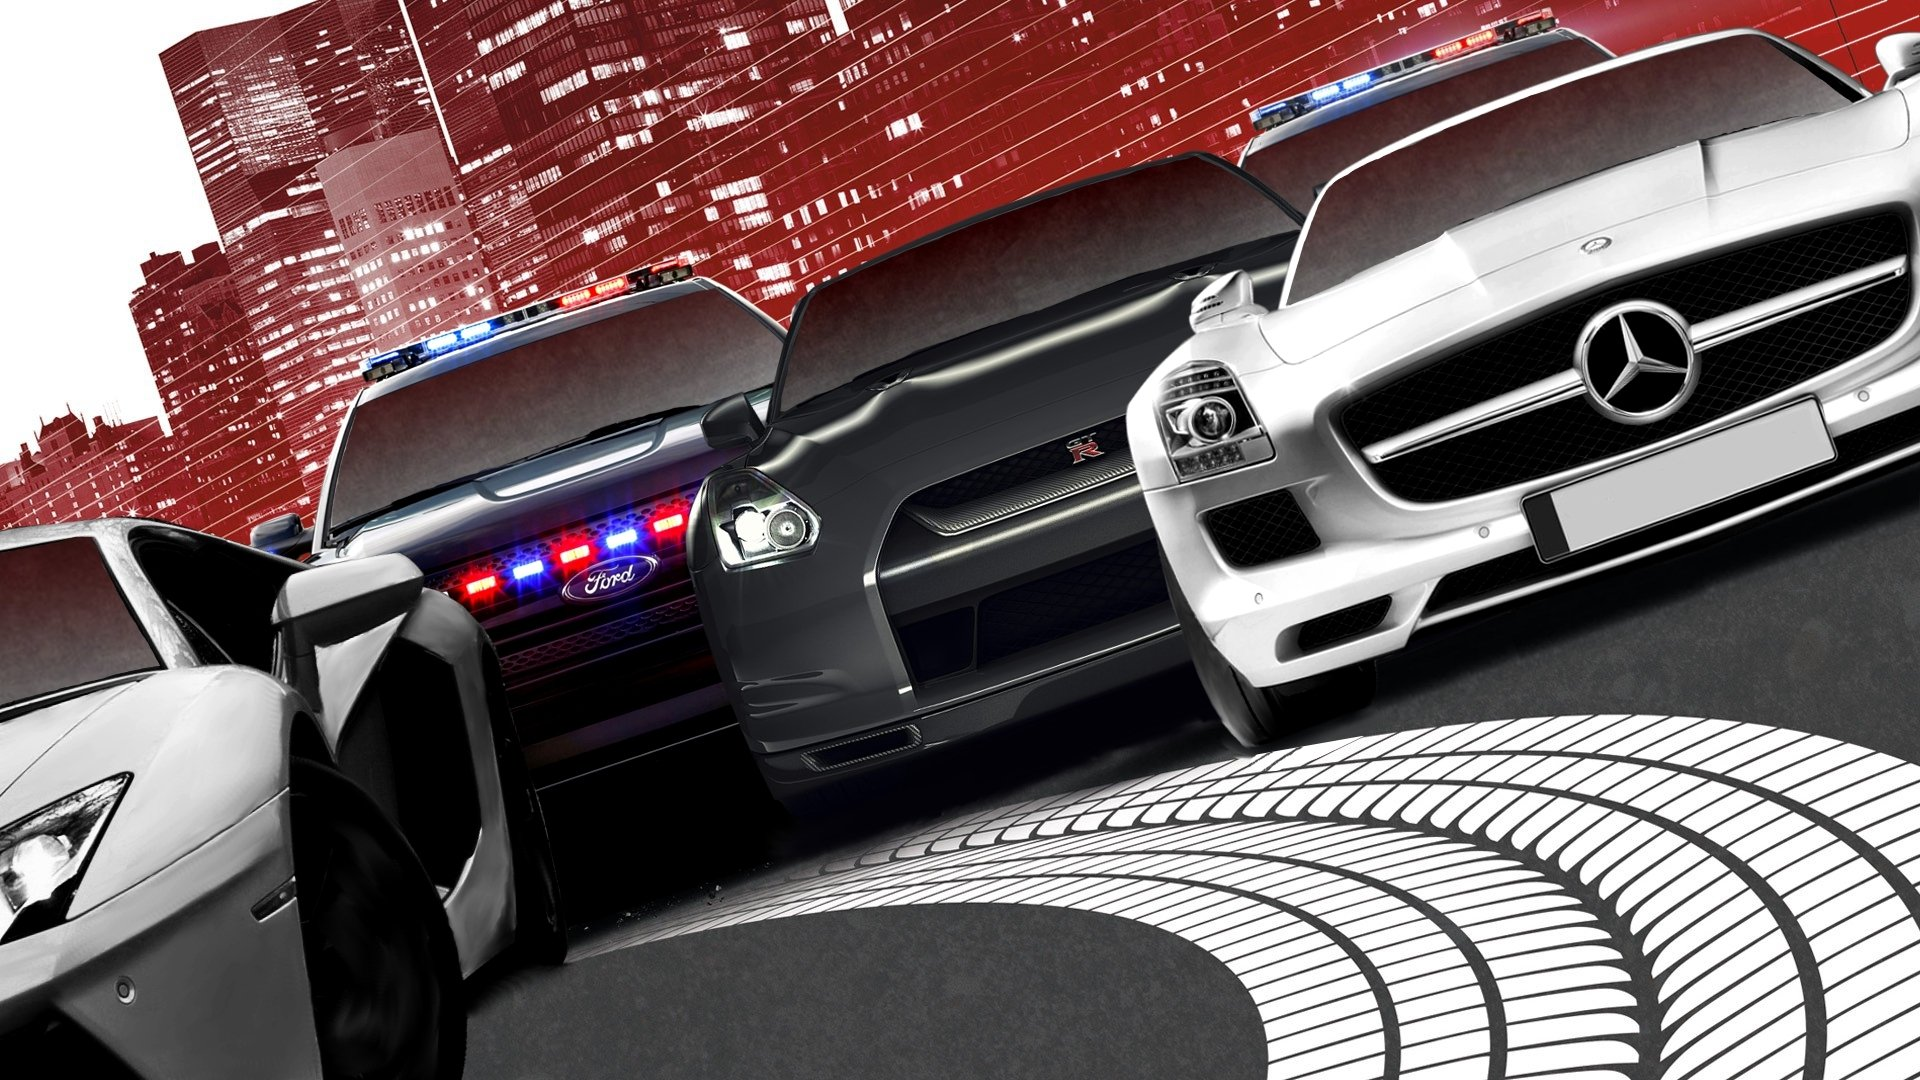 Nfs Most Wanted Wallpapers HD Wallpaper